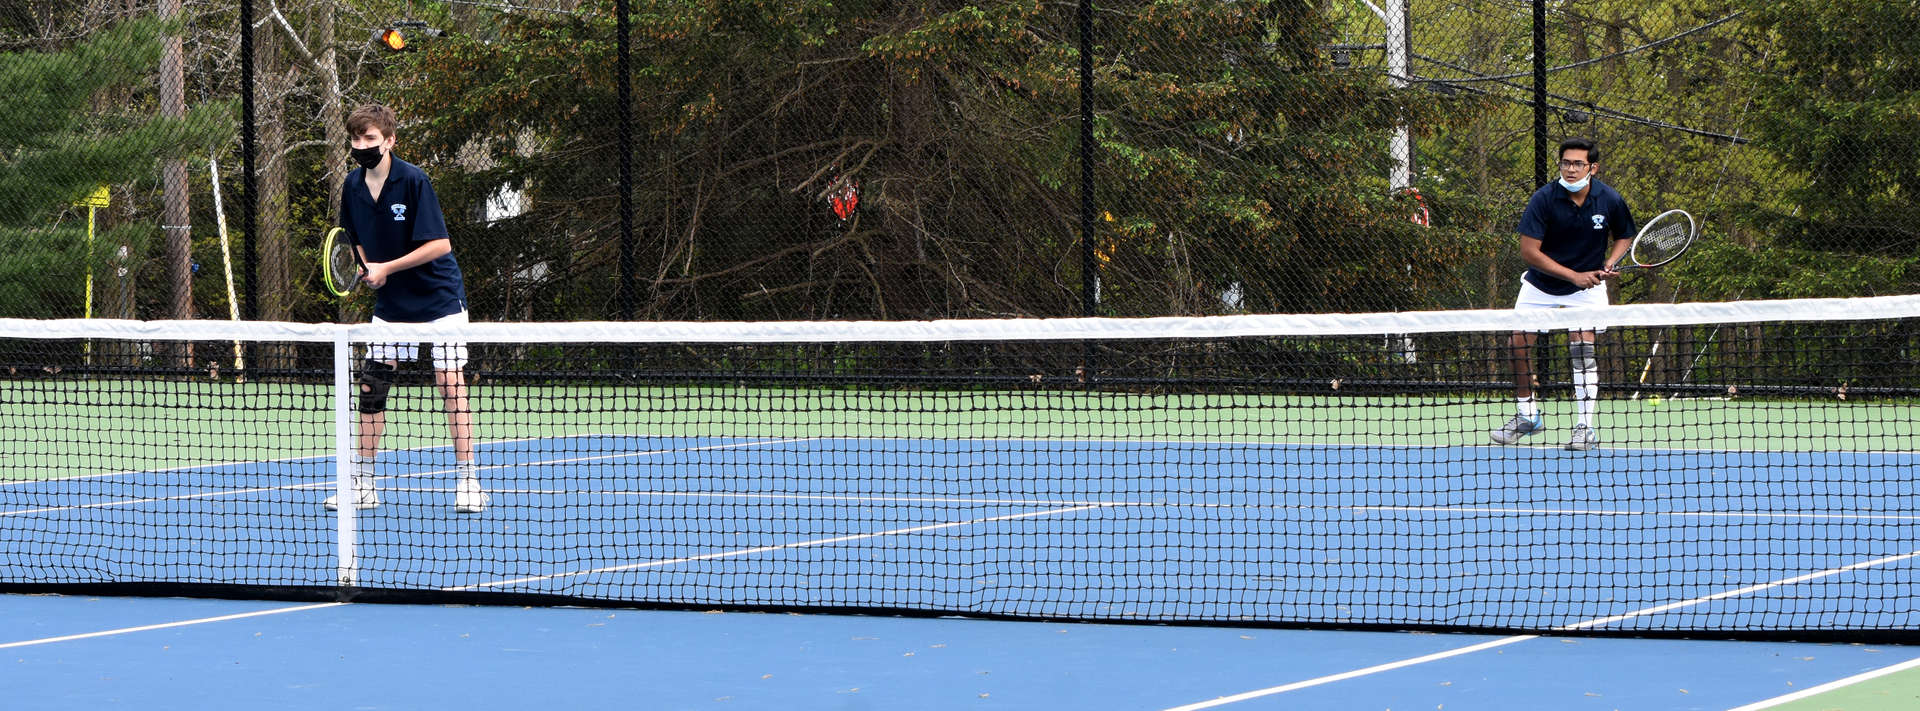 2 male students playing tennis